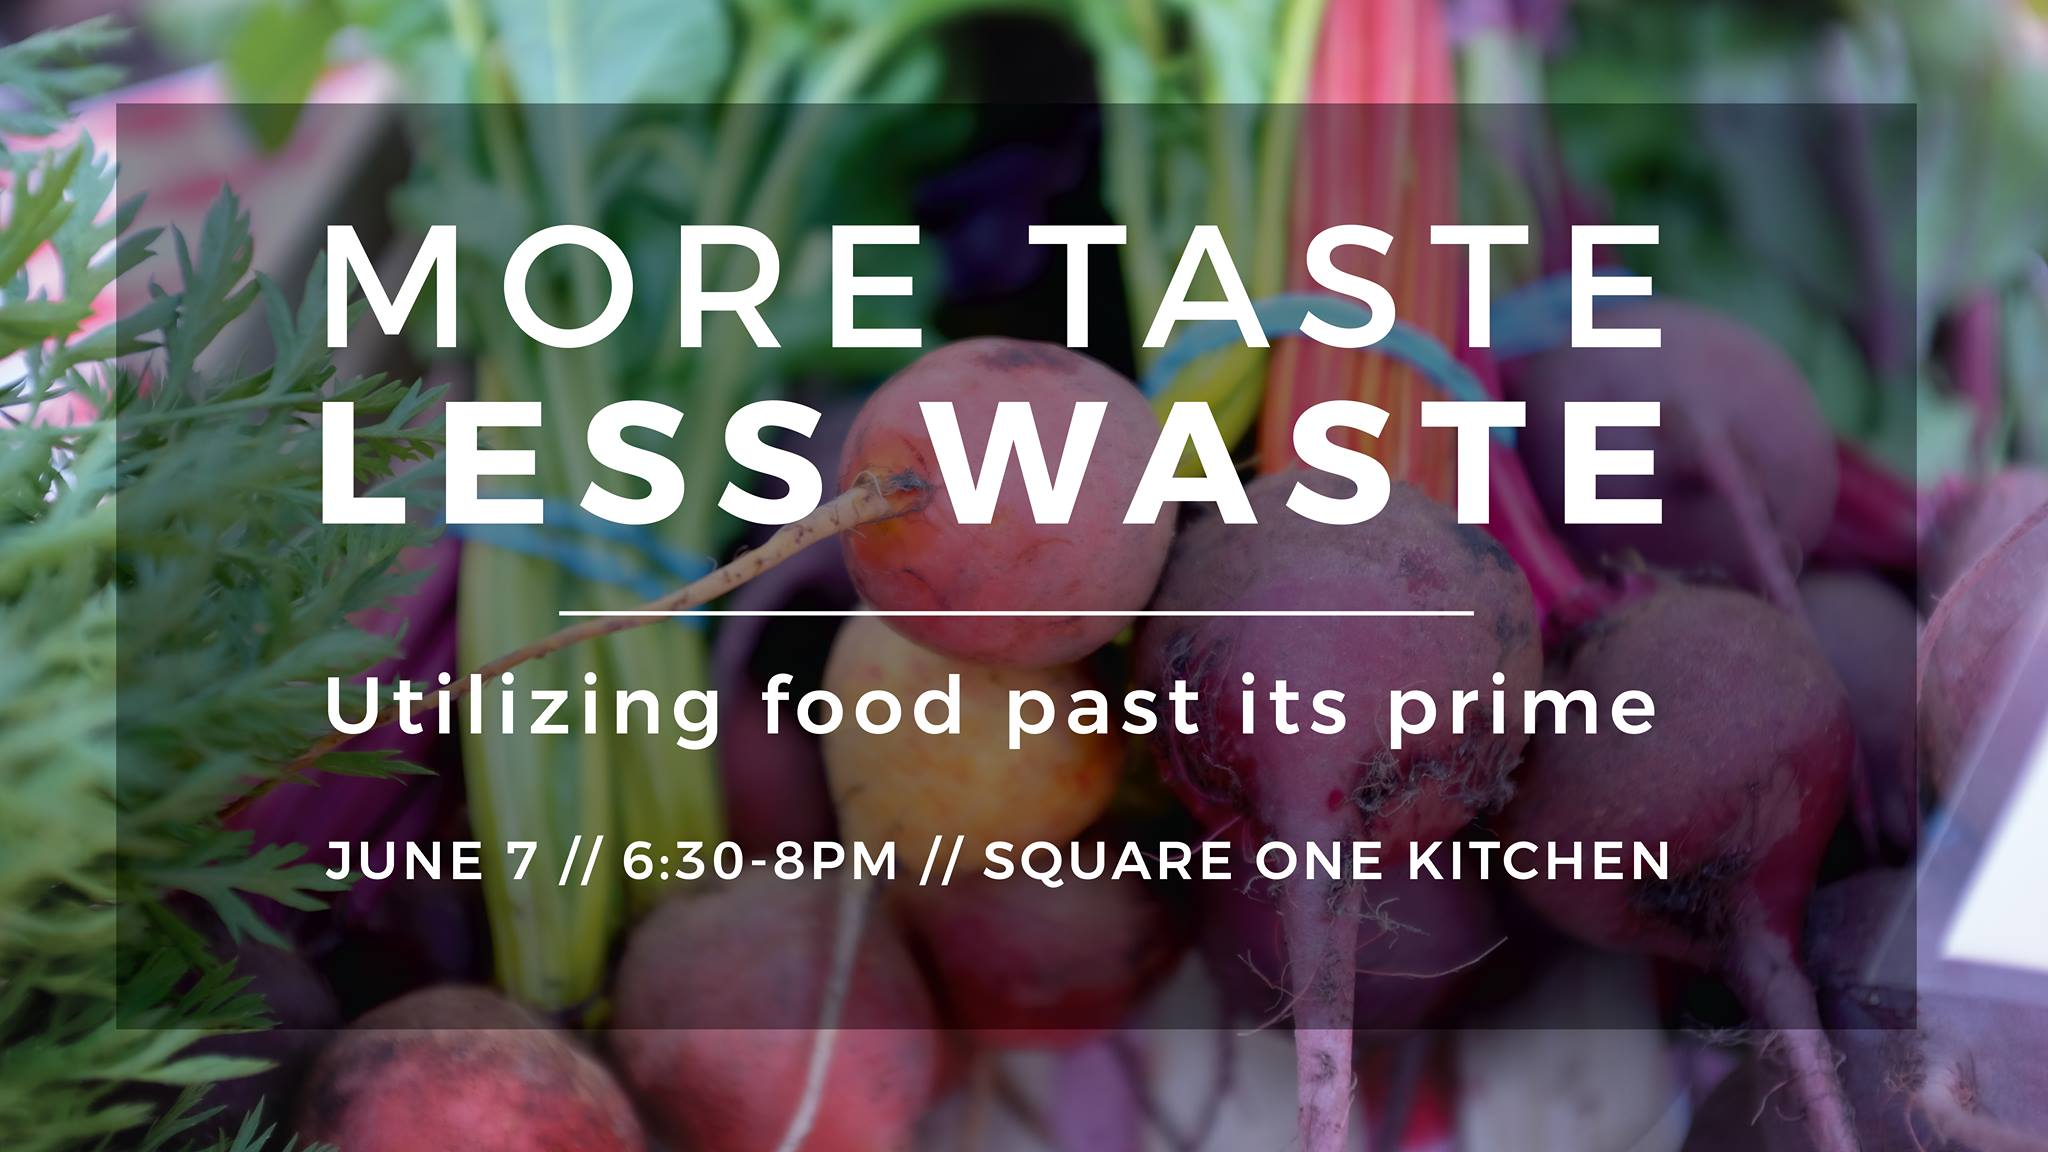 June 2017 -  More Taste, Less Waste  hosted at Square One Kitchen Rental Space.  Watch archived Facebook Live Video here!